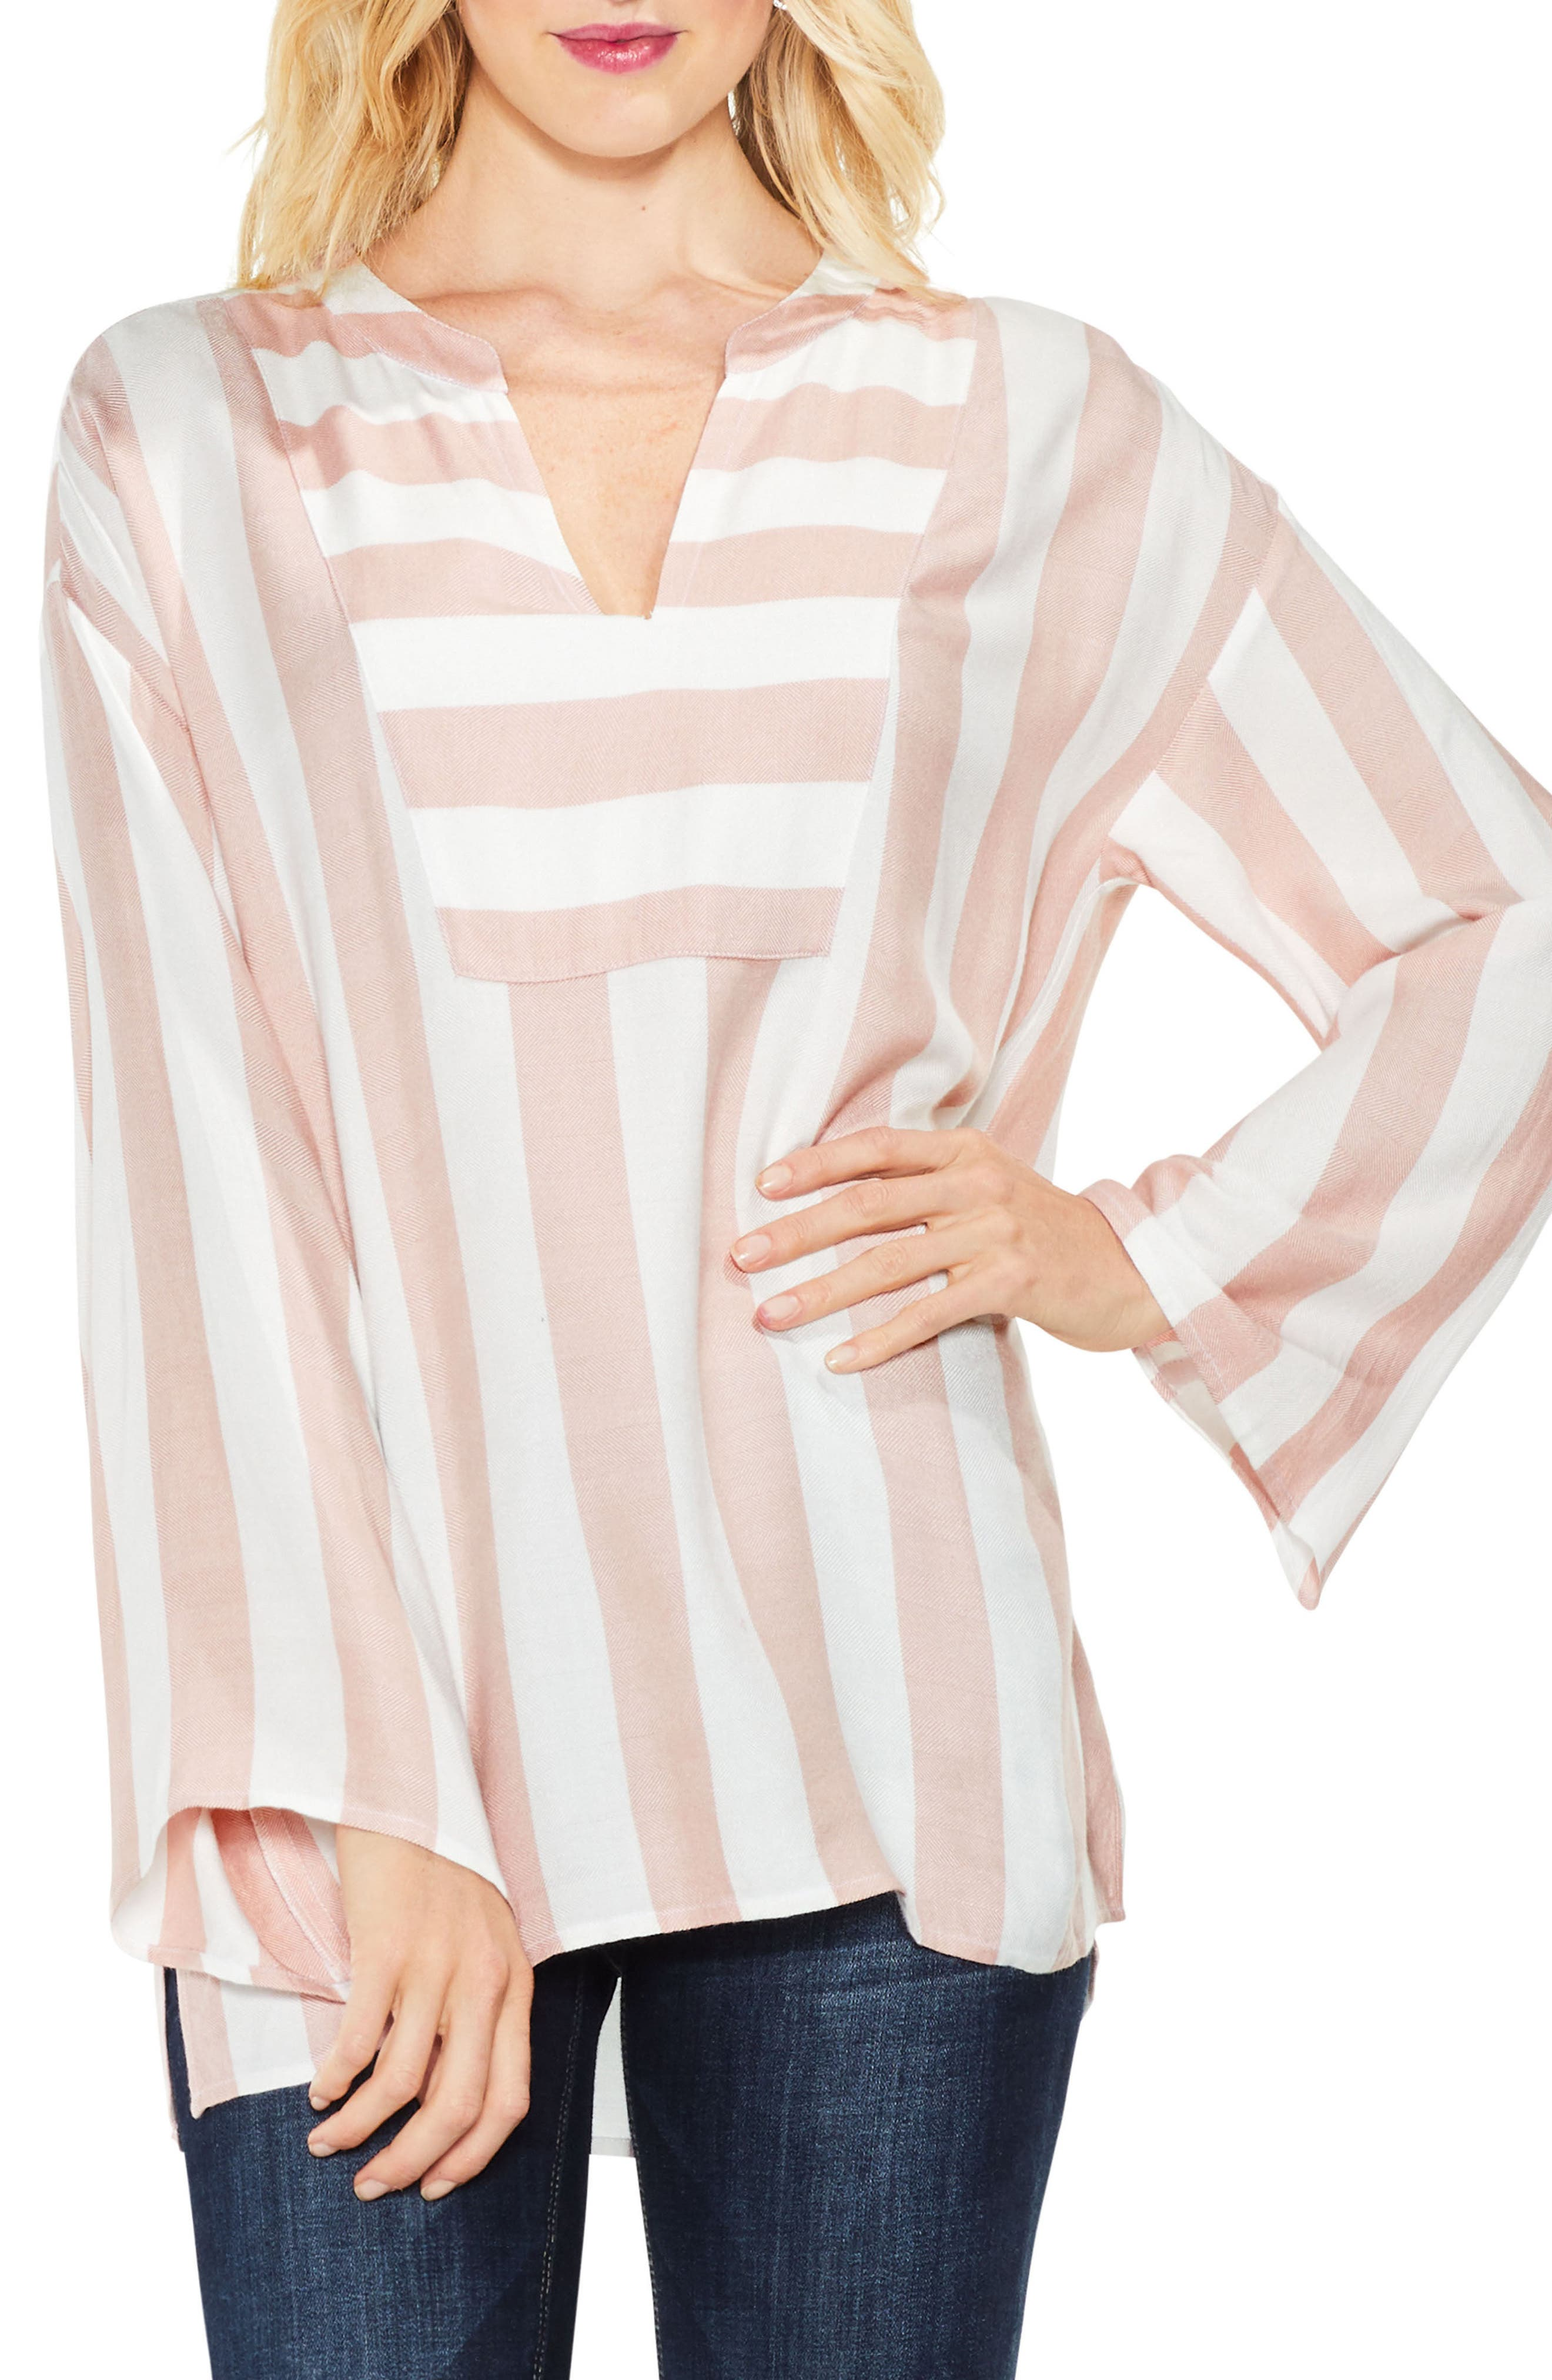 Alternate Image 1 Selected - Two by Vince Camuto Bell Sleeve Top